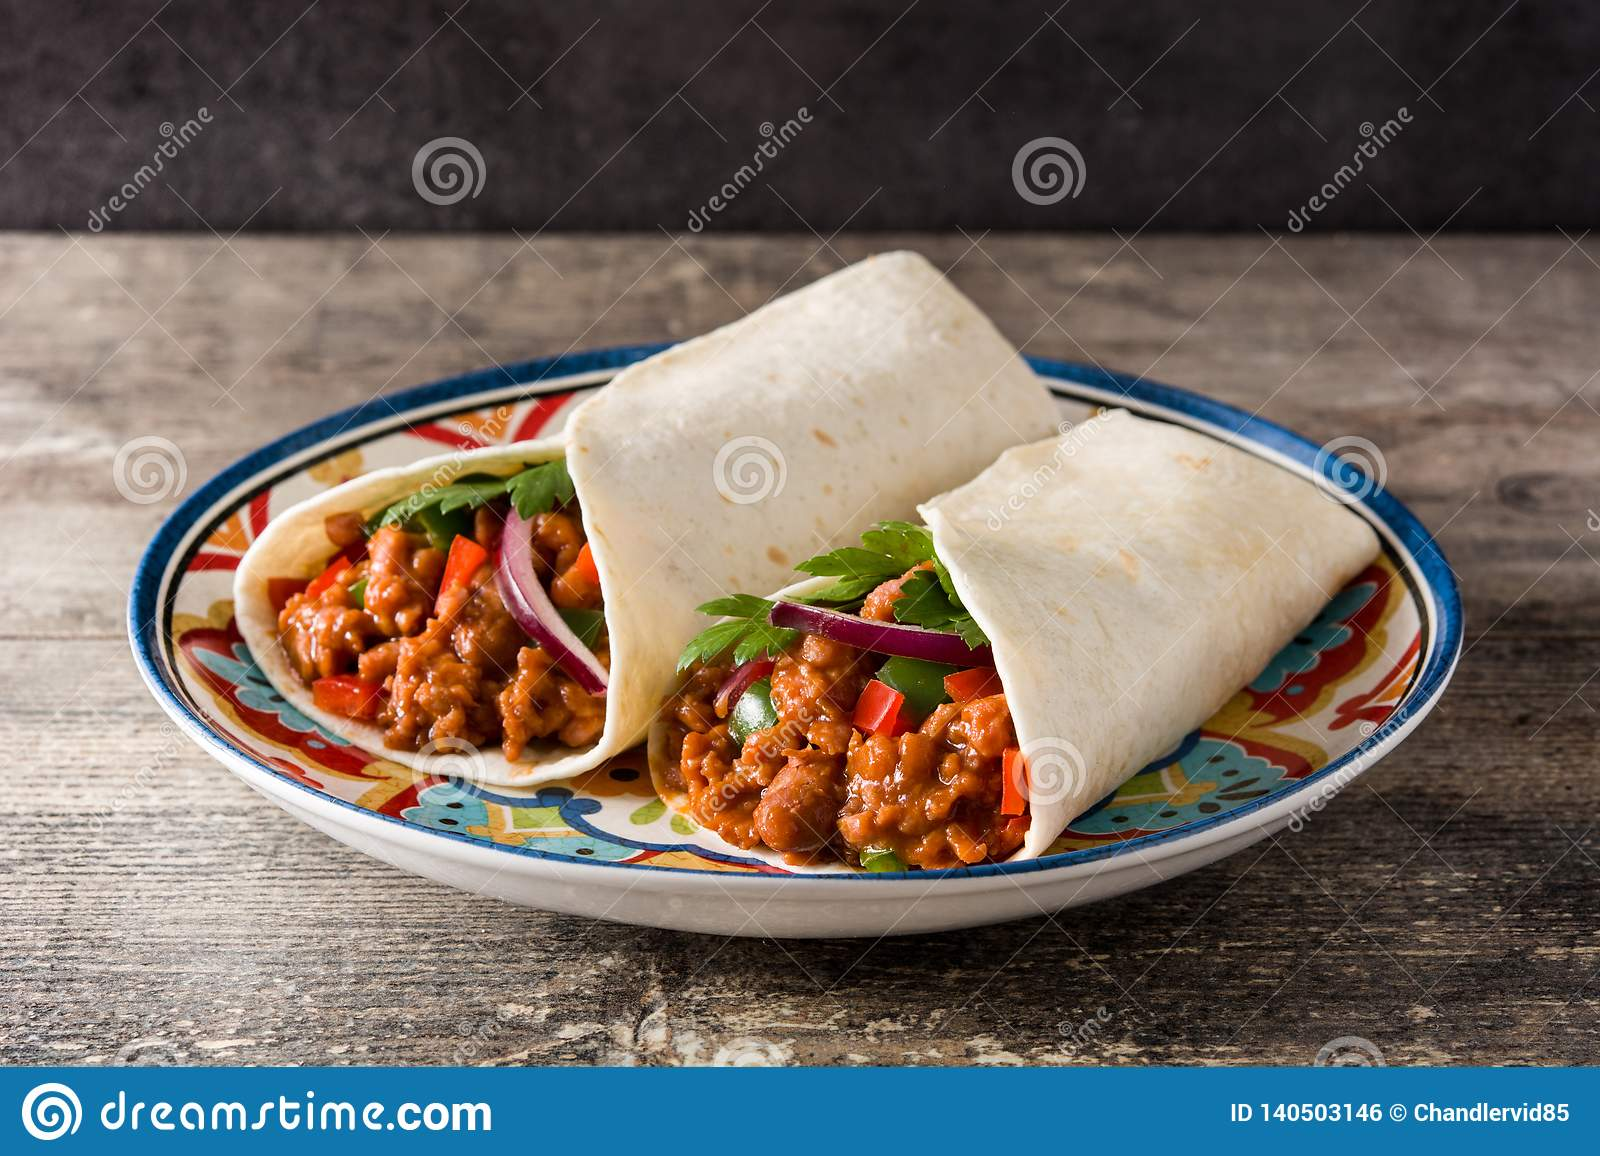 Typical Mexican burrito wrap with beef, frijoles and vegetables